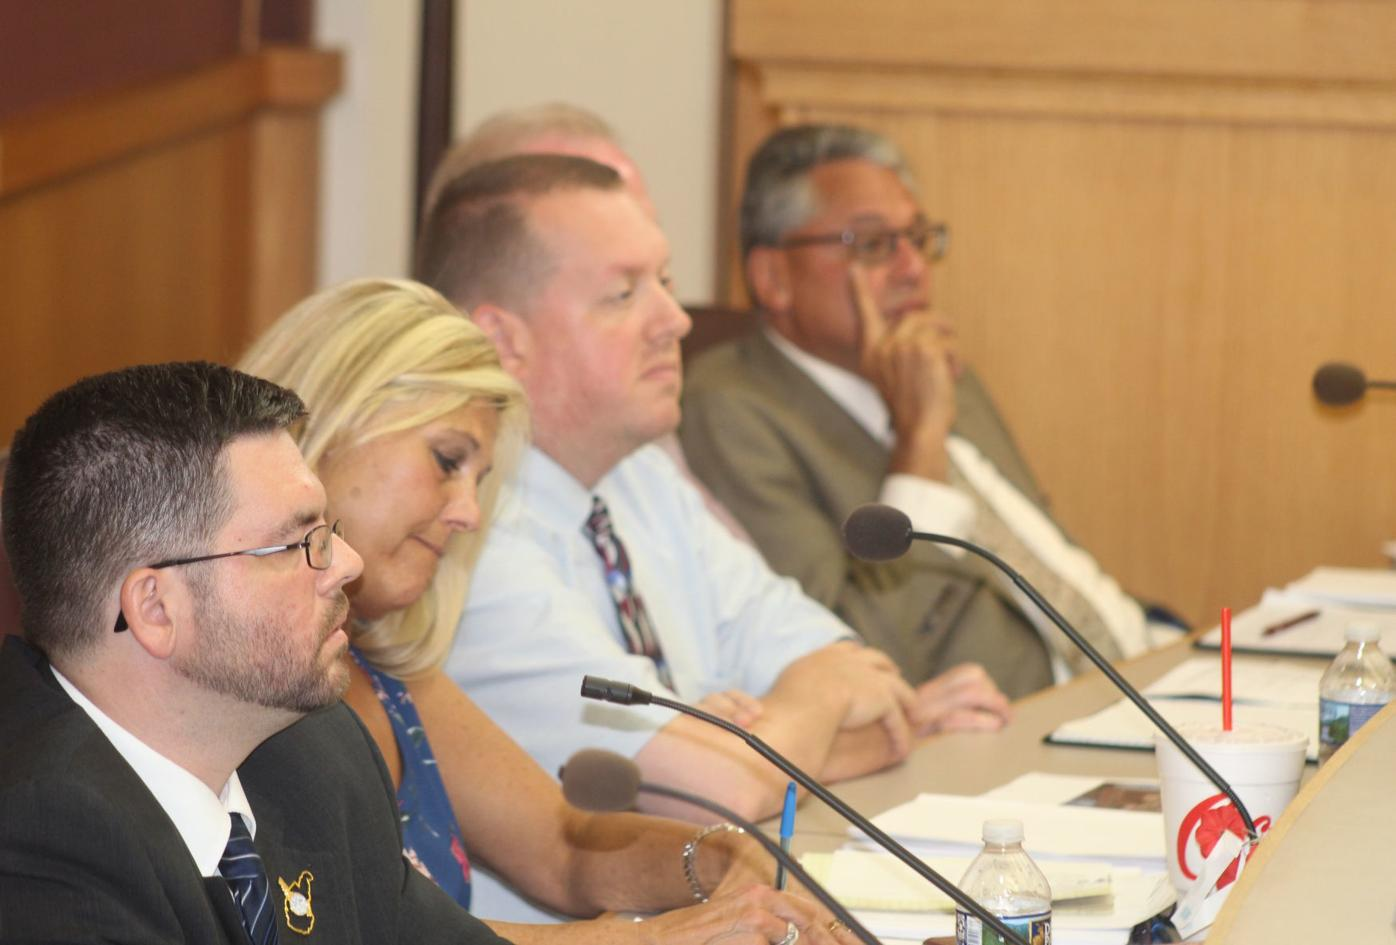 Council members listening